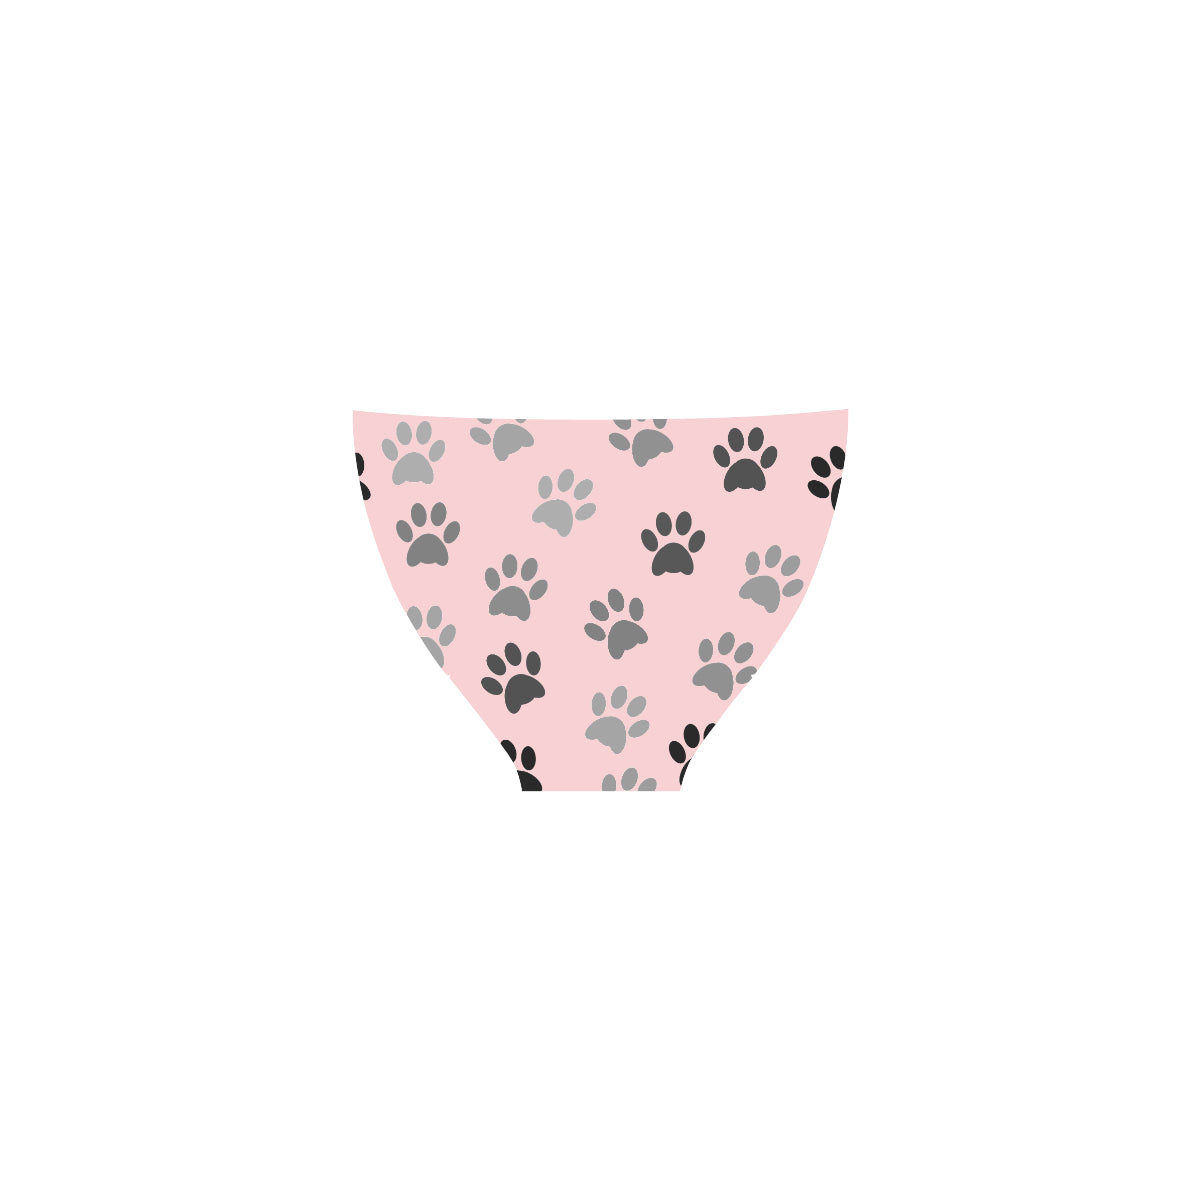 Maillot de bain rose au design pattes de chat dos